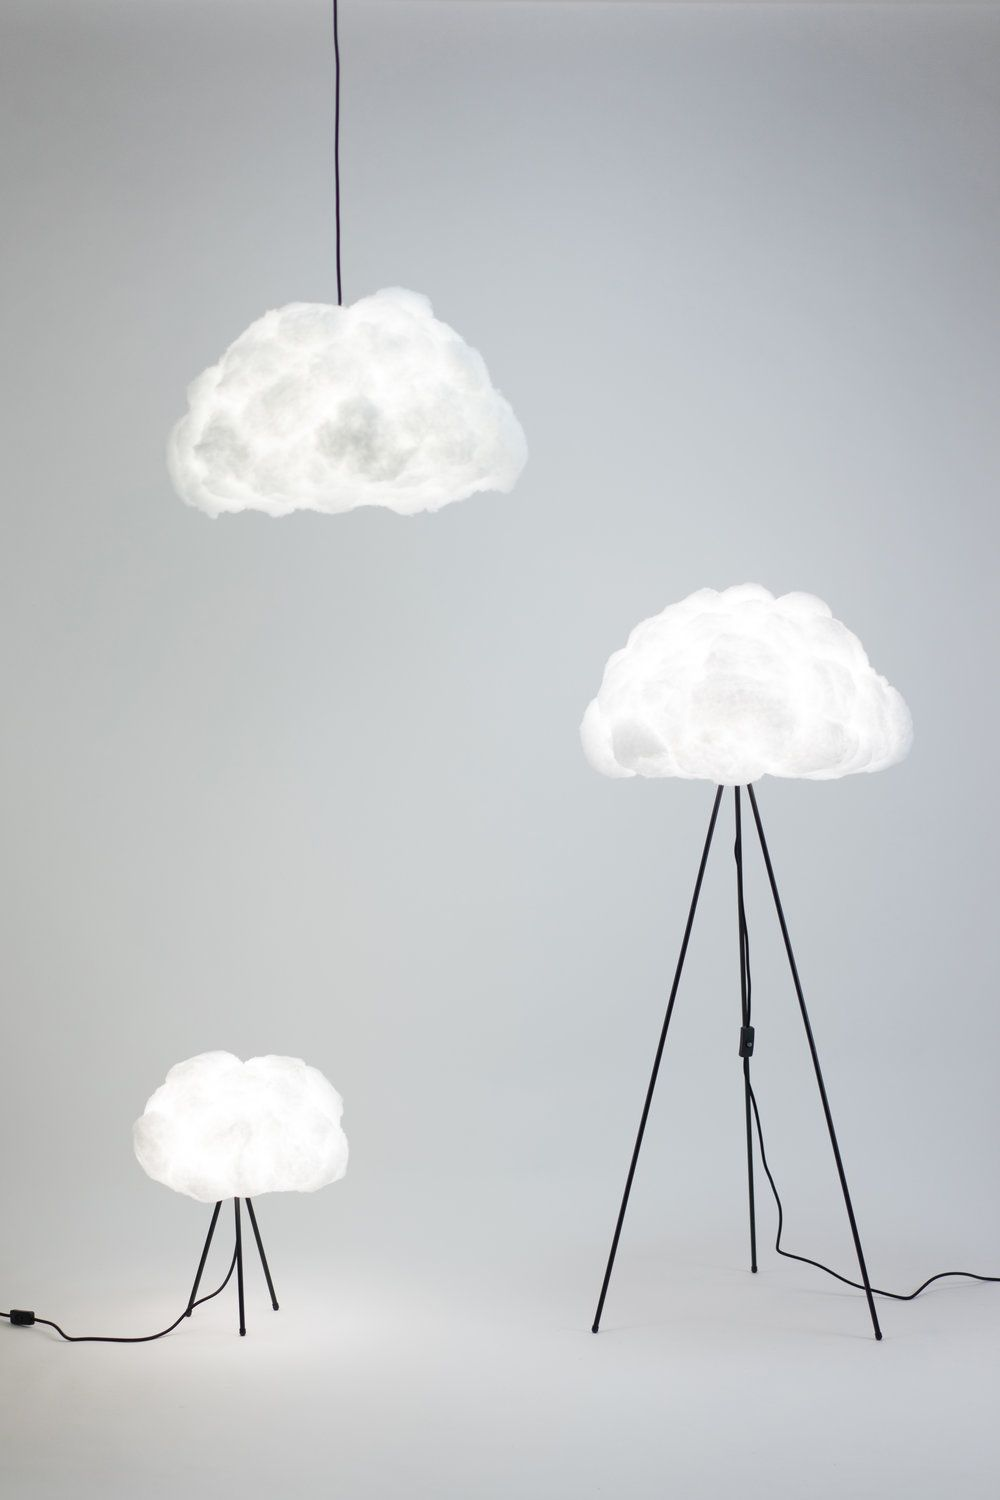 Lamp Shade Designed To Mimic The Shape And Texture Of A Cloud. More Info  Below U0026 Project Link Here.